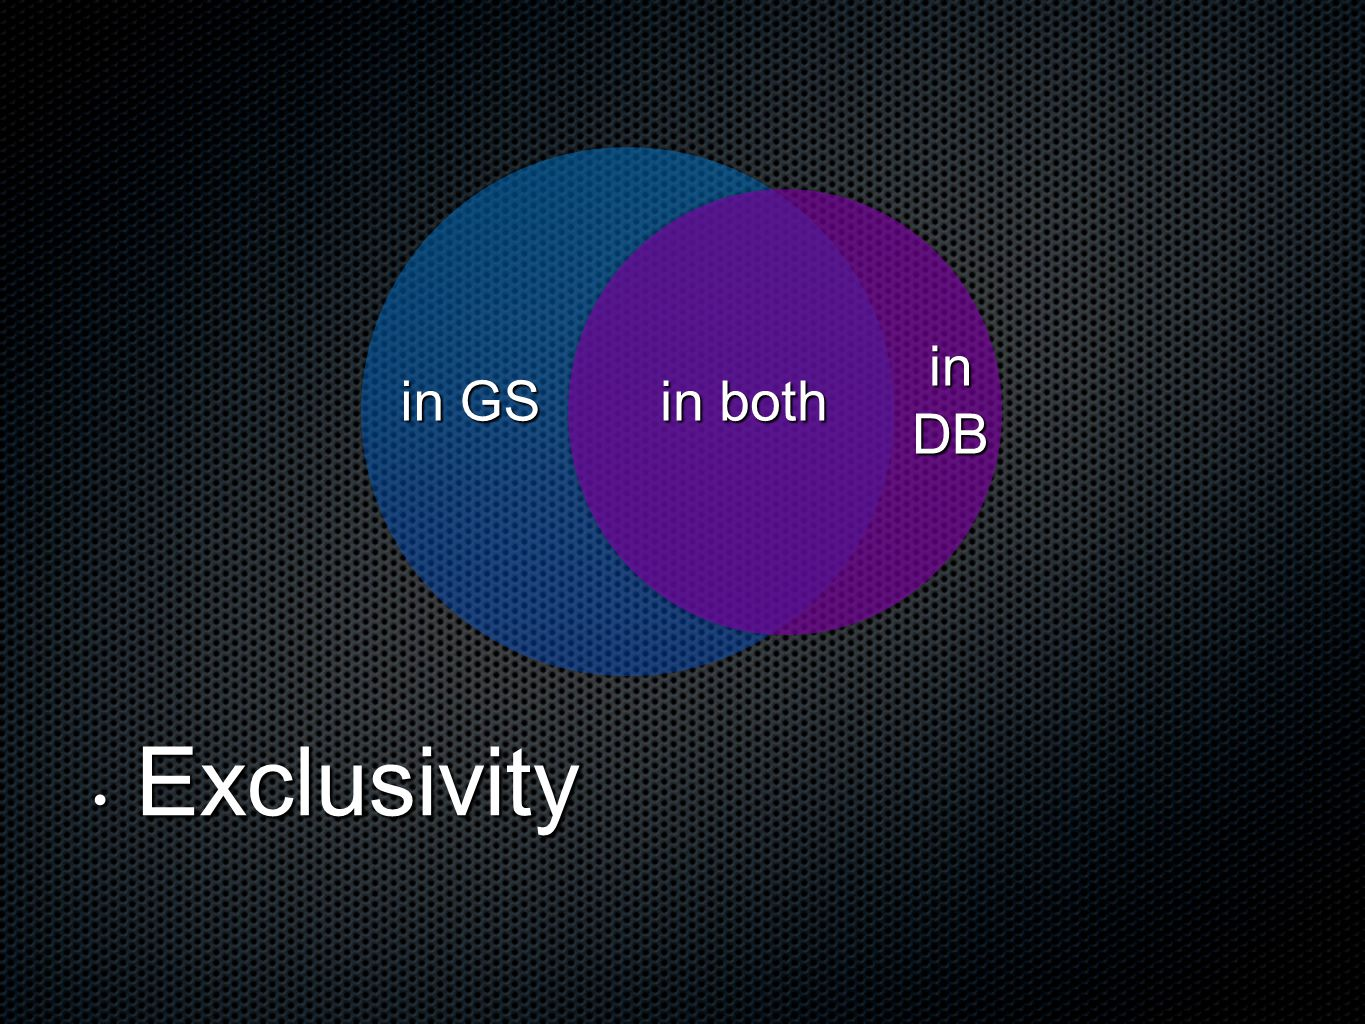 in GS inDB in both Exclusivity Exclusivity